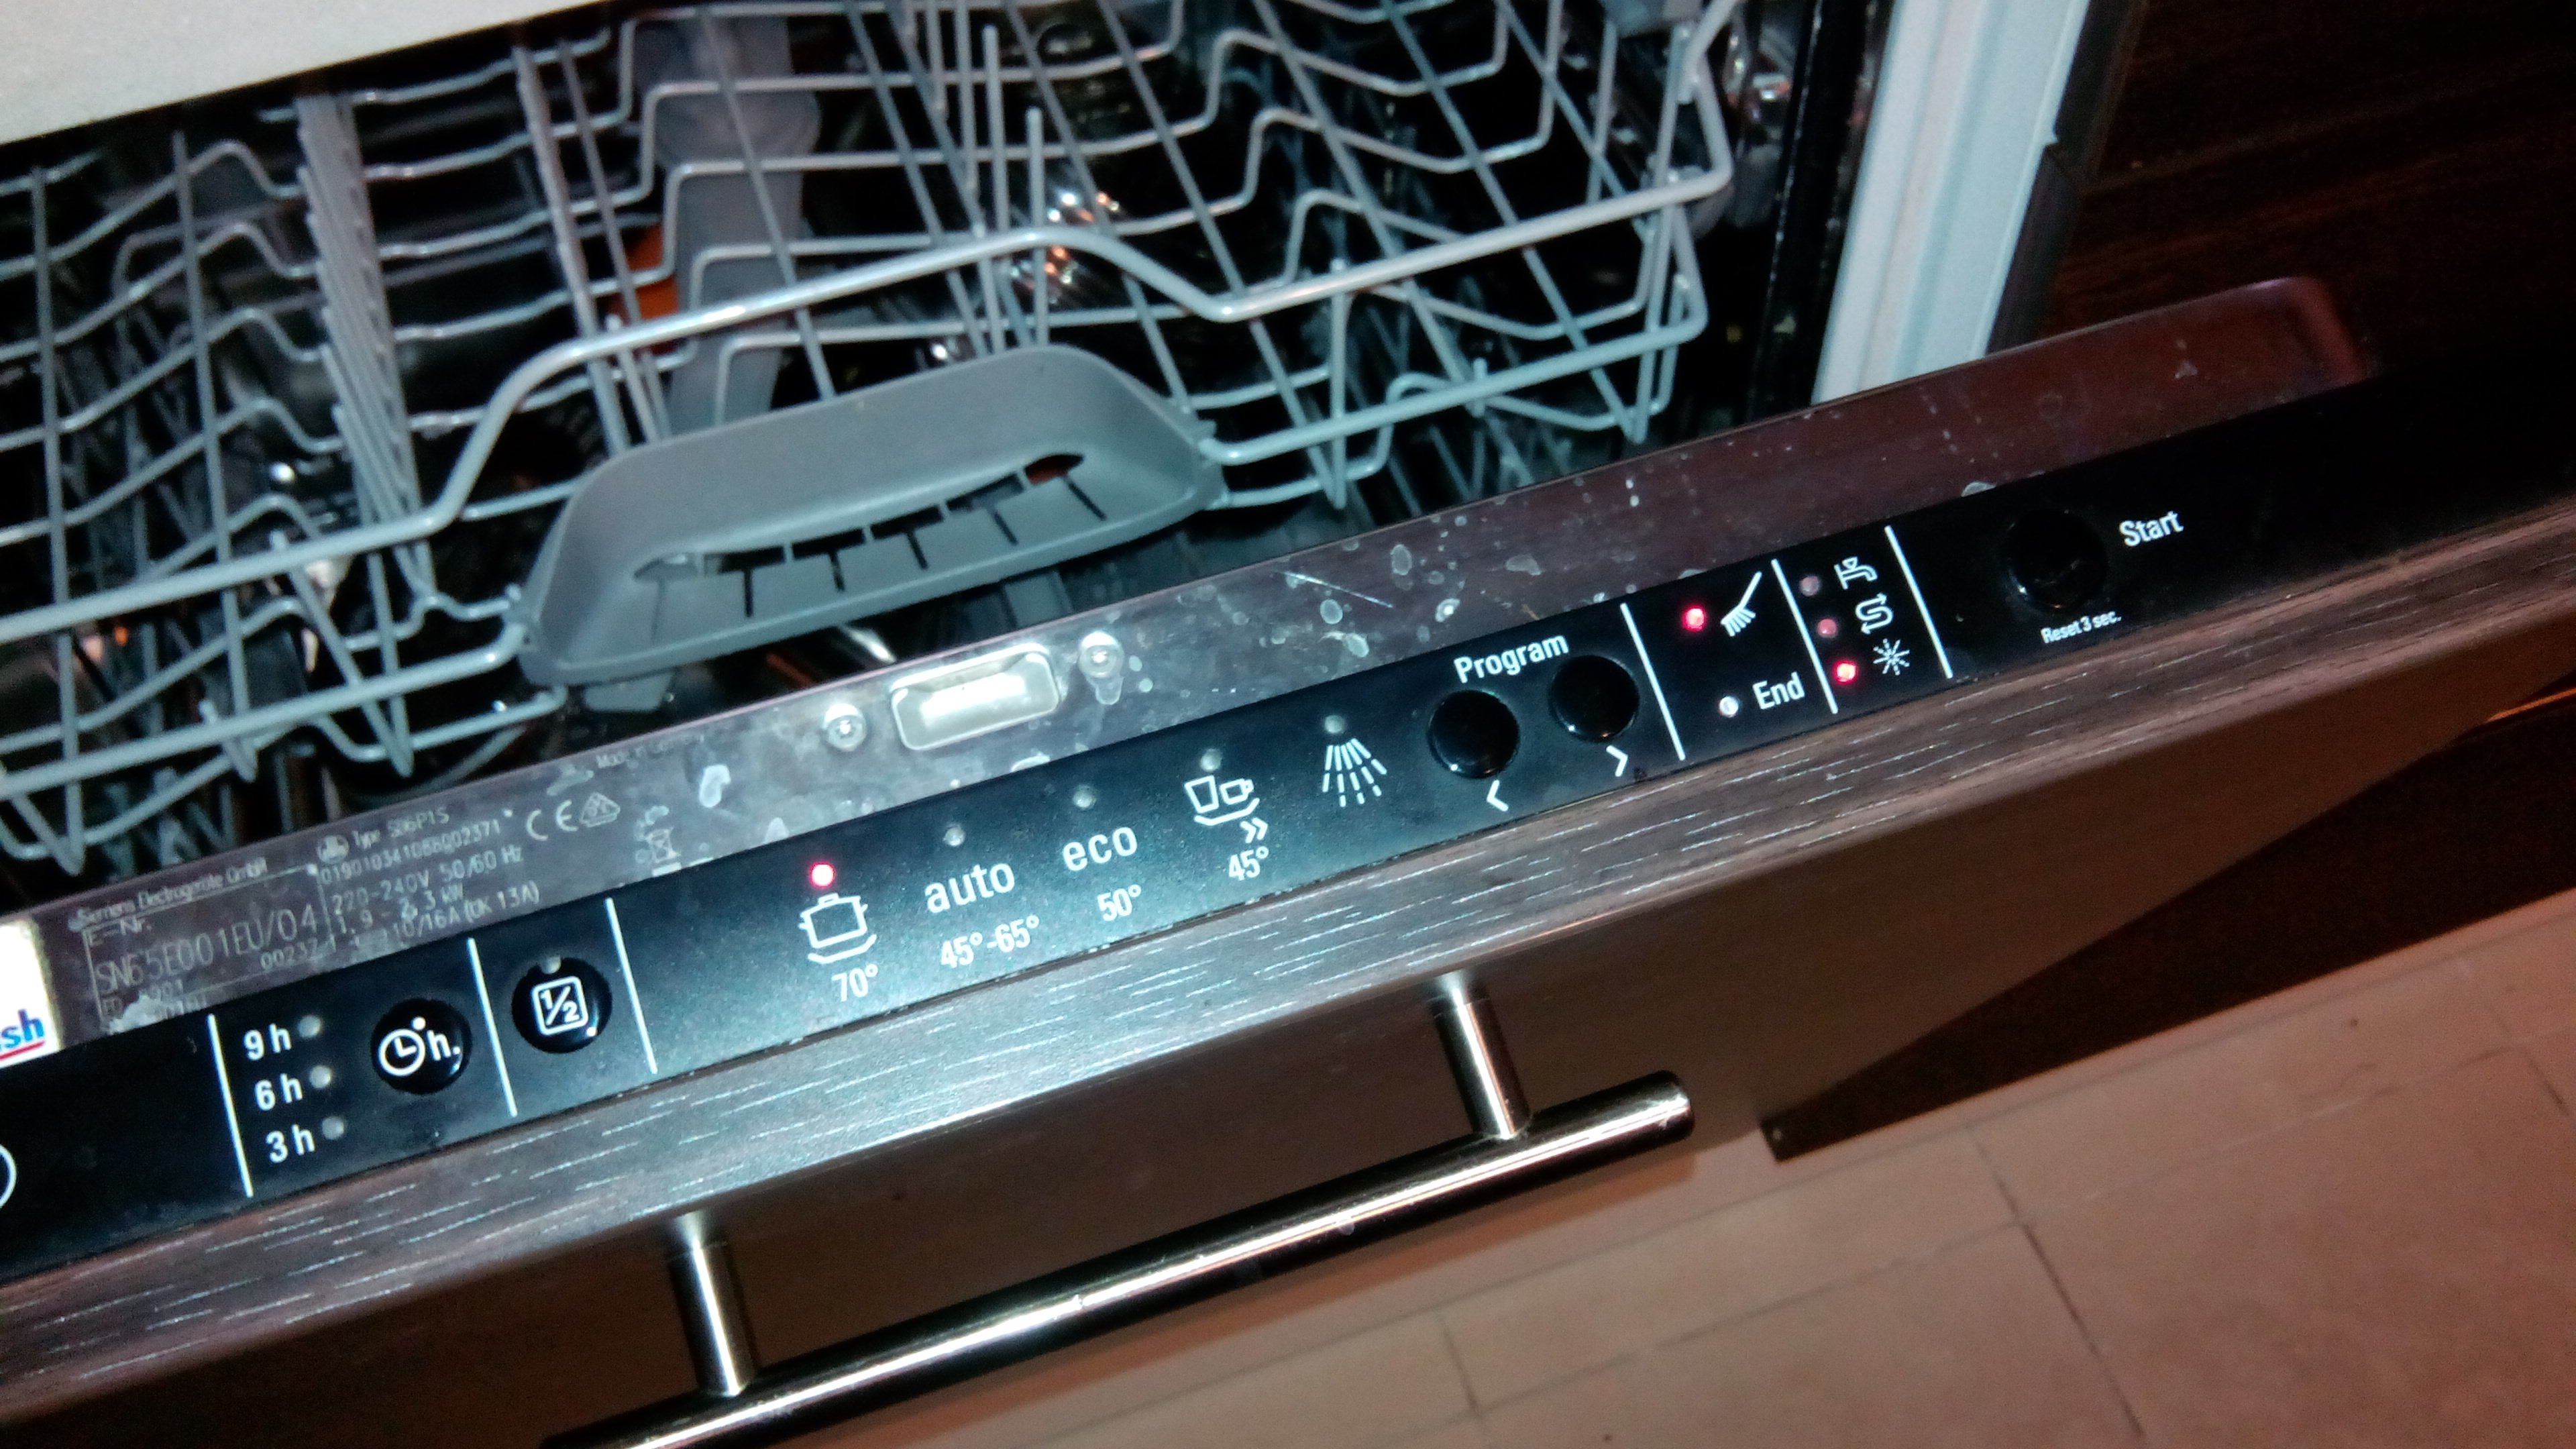 siemens dishwasher sd6p1s the brush light is on the. Black Bedroom Furniture Sets. Home Design Ideas